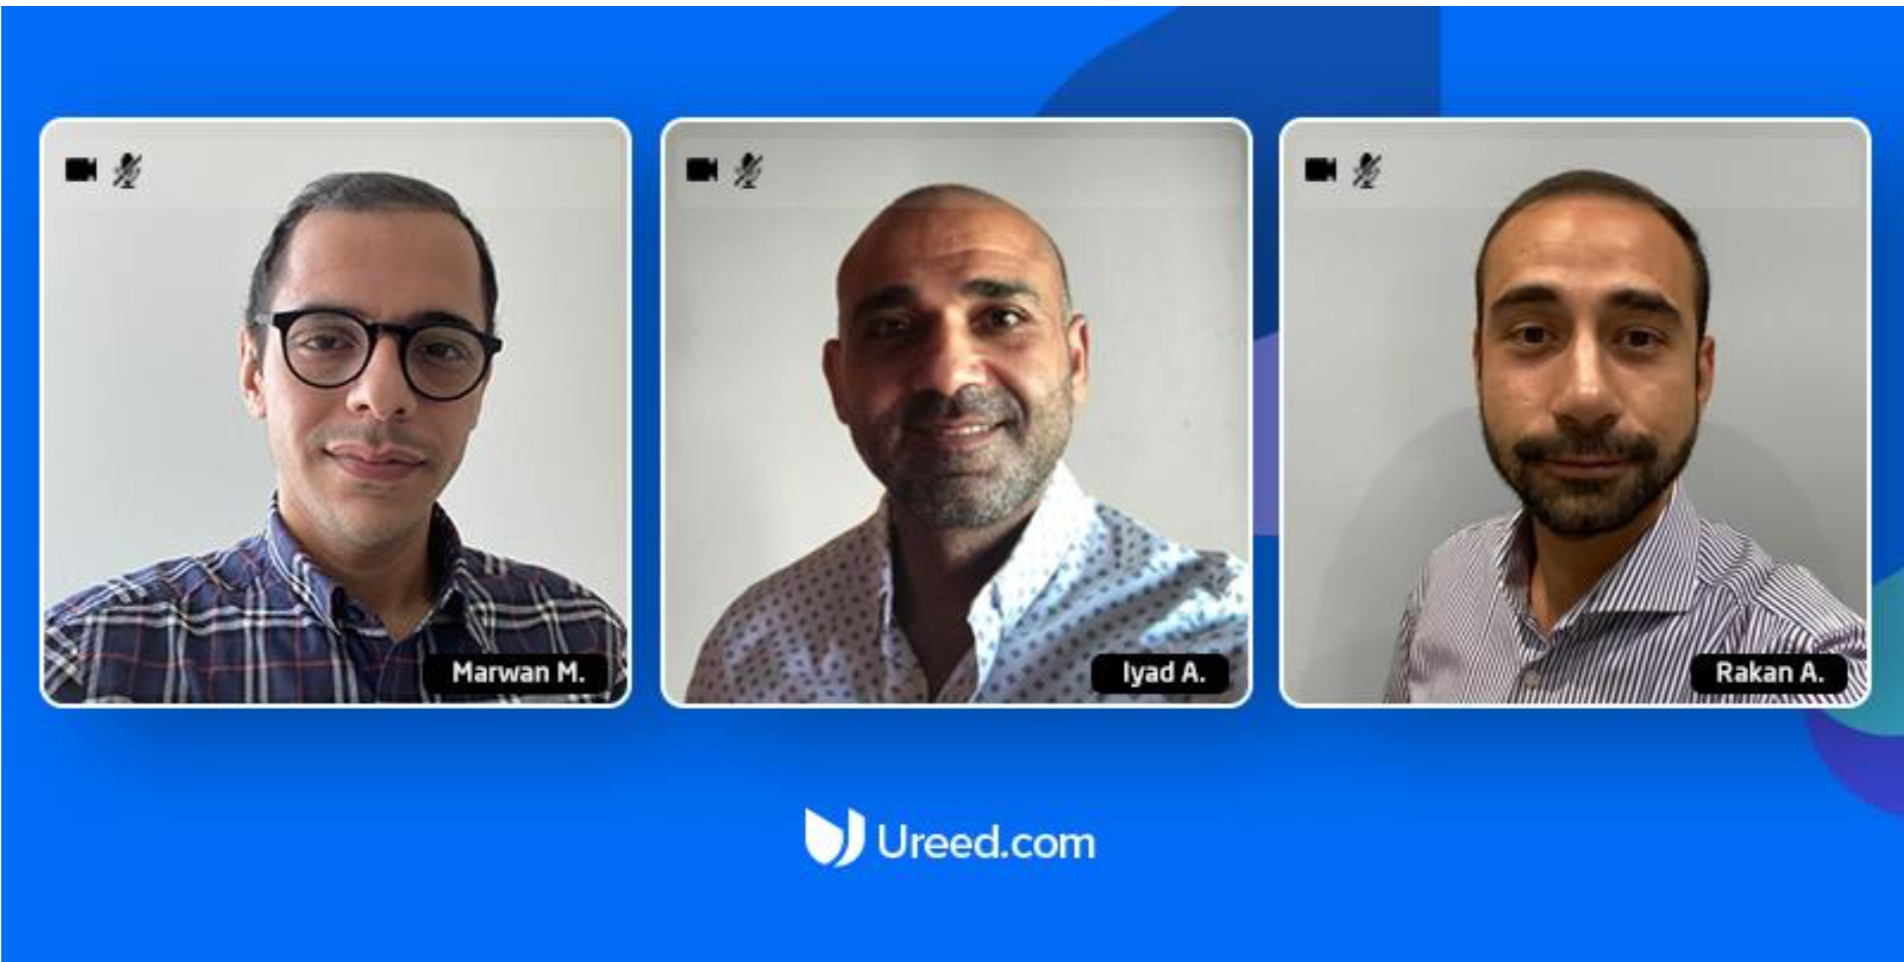 Wamda invests in freelance marketplace Ureed.com